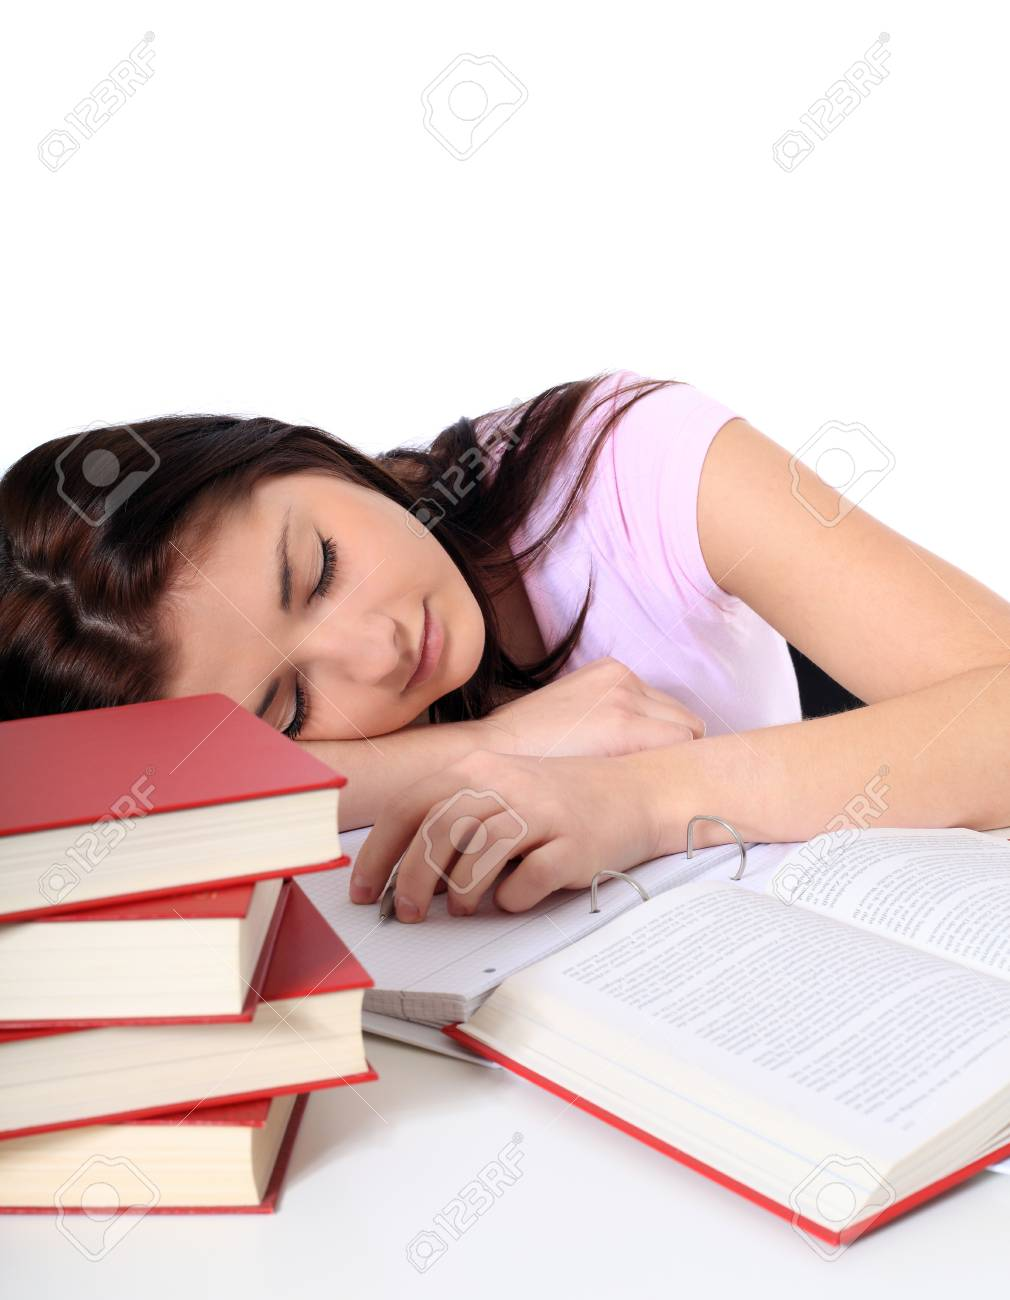 Attractive young woman is taking a nap on her study documents. All on white background. Stock Photo - 8504817